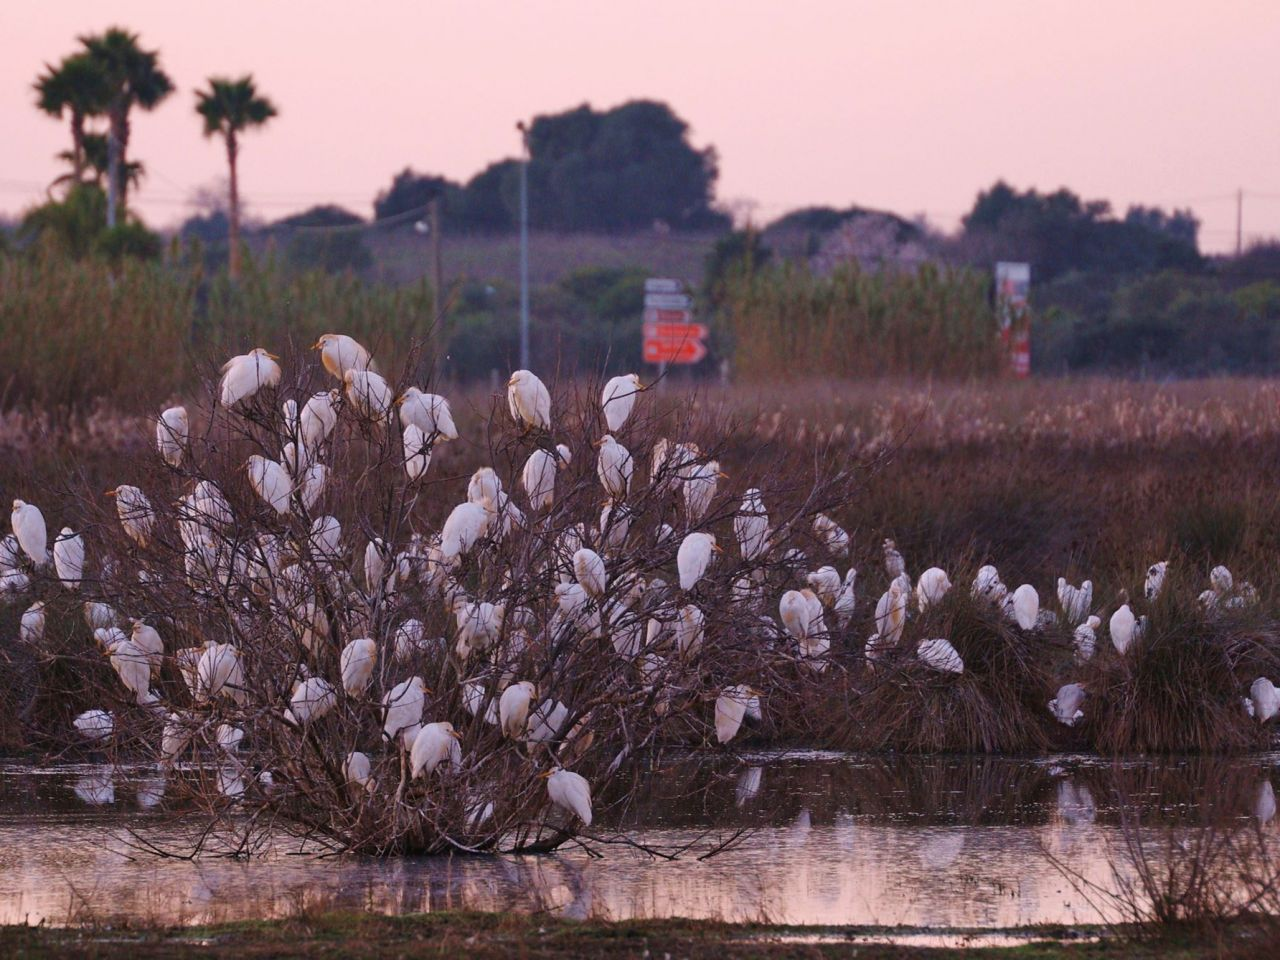 PAN wants Lagoa to protect wetlands